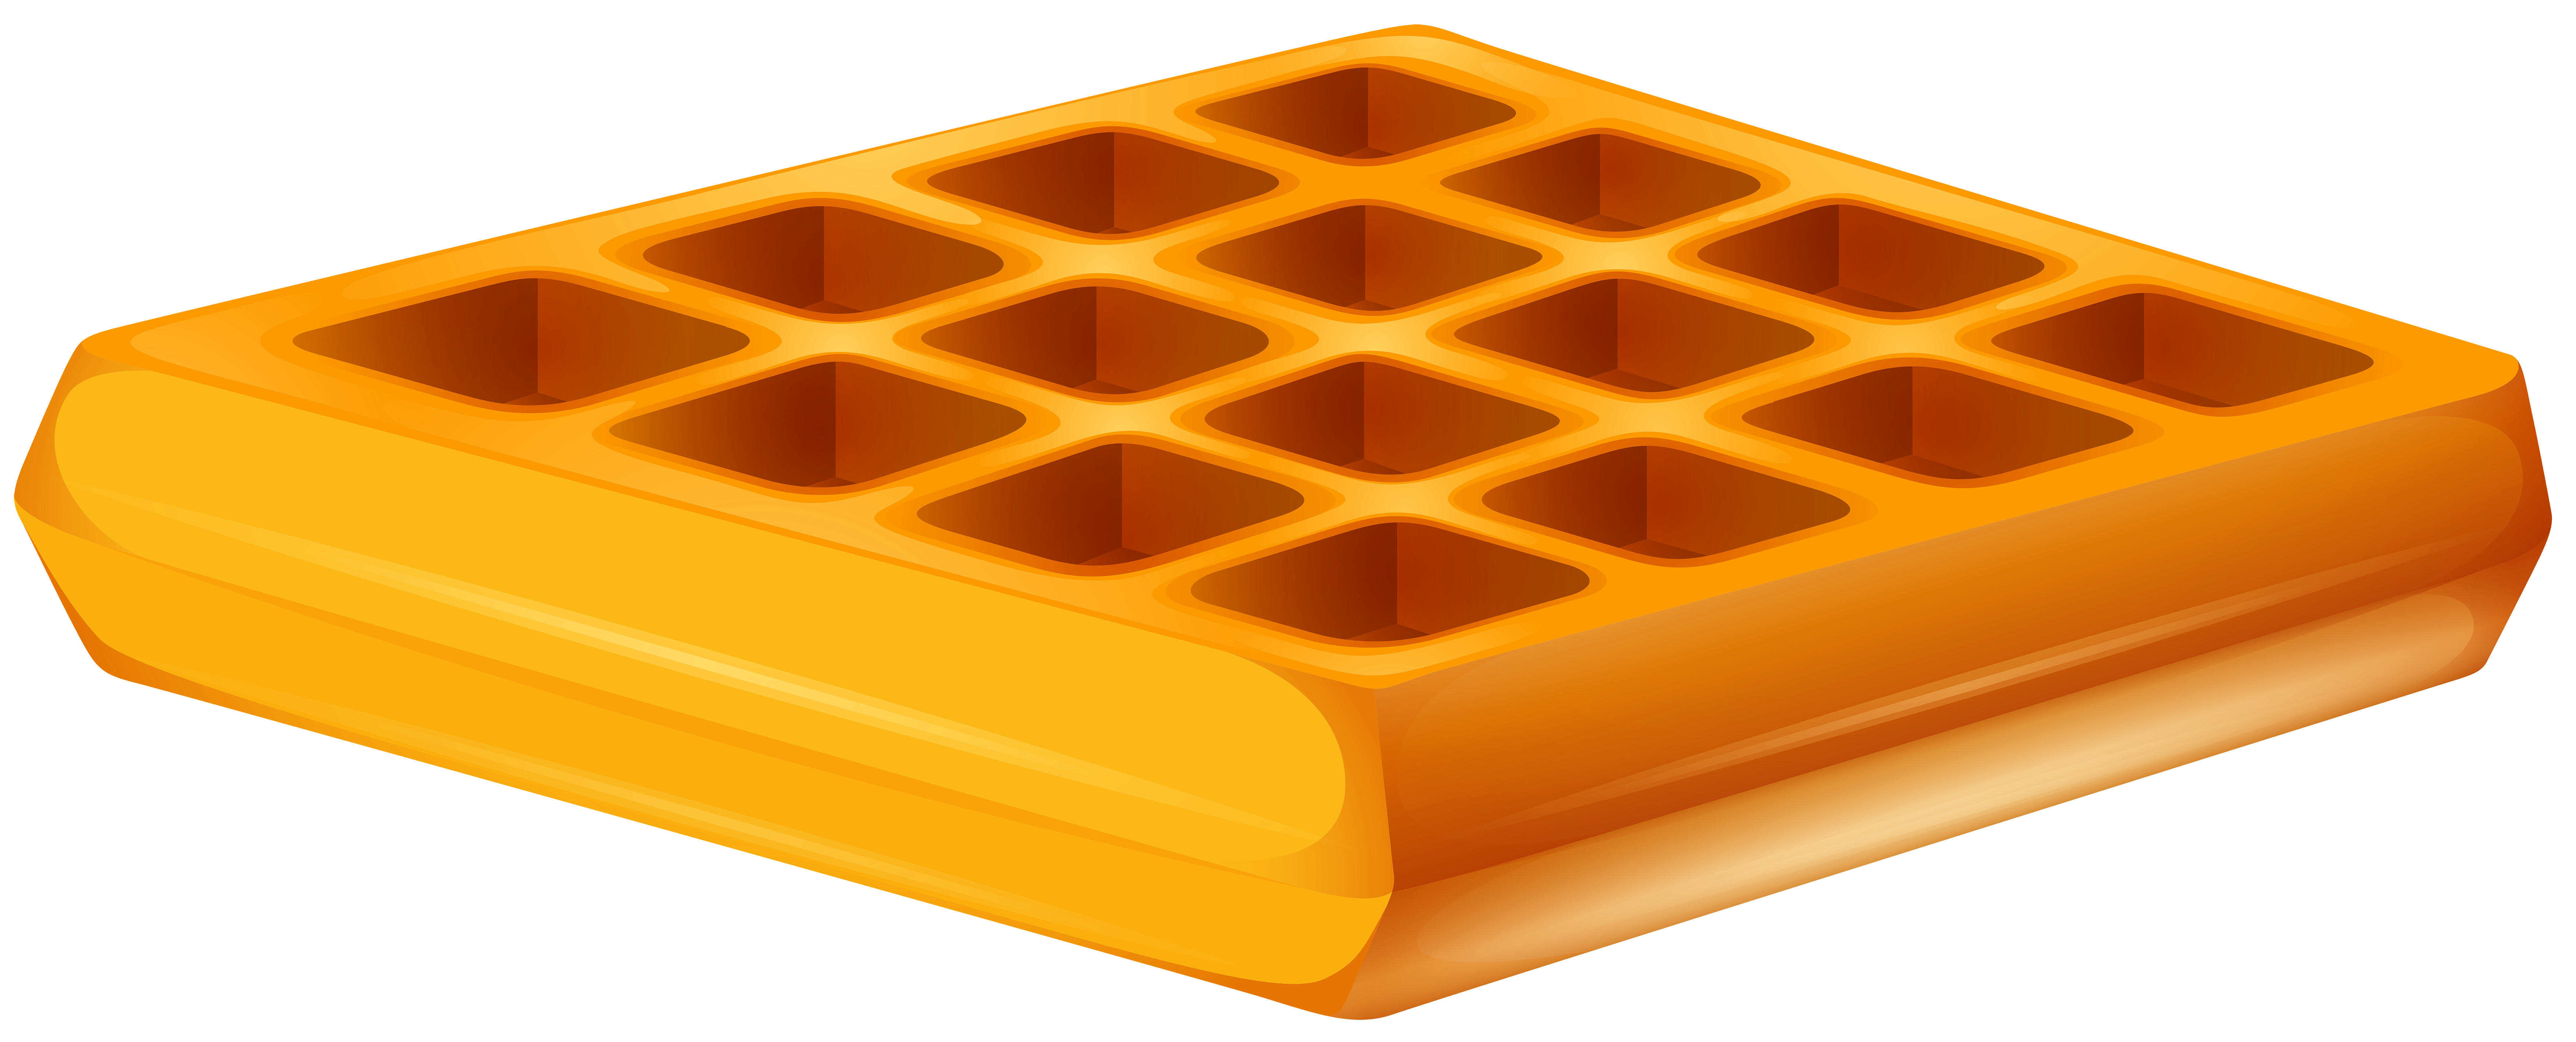 Cartoon waffle png. Transparent clip art image